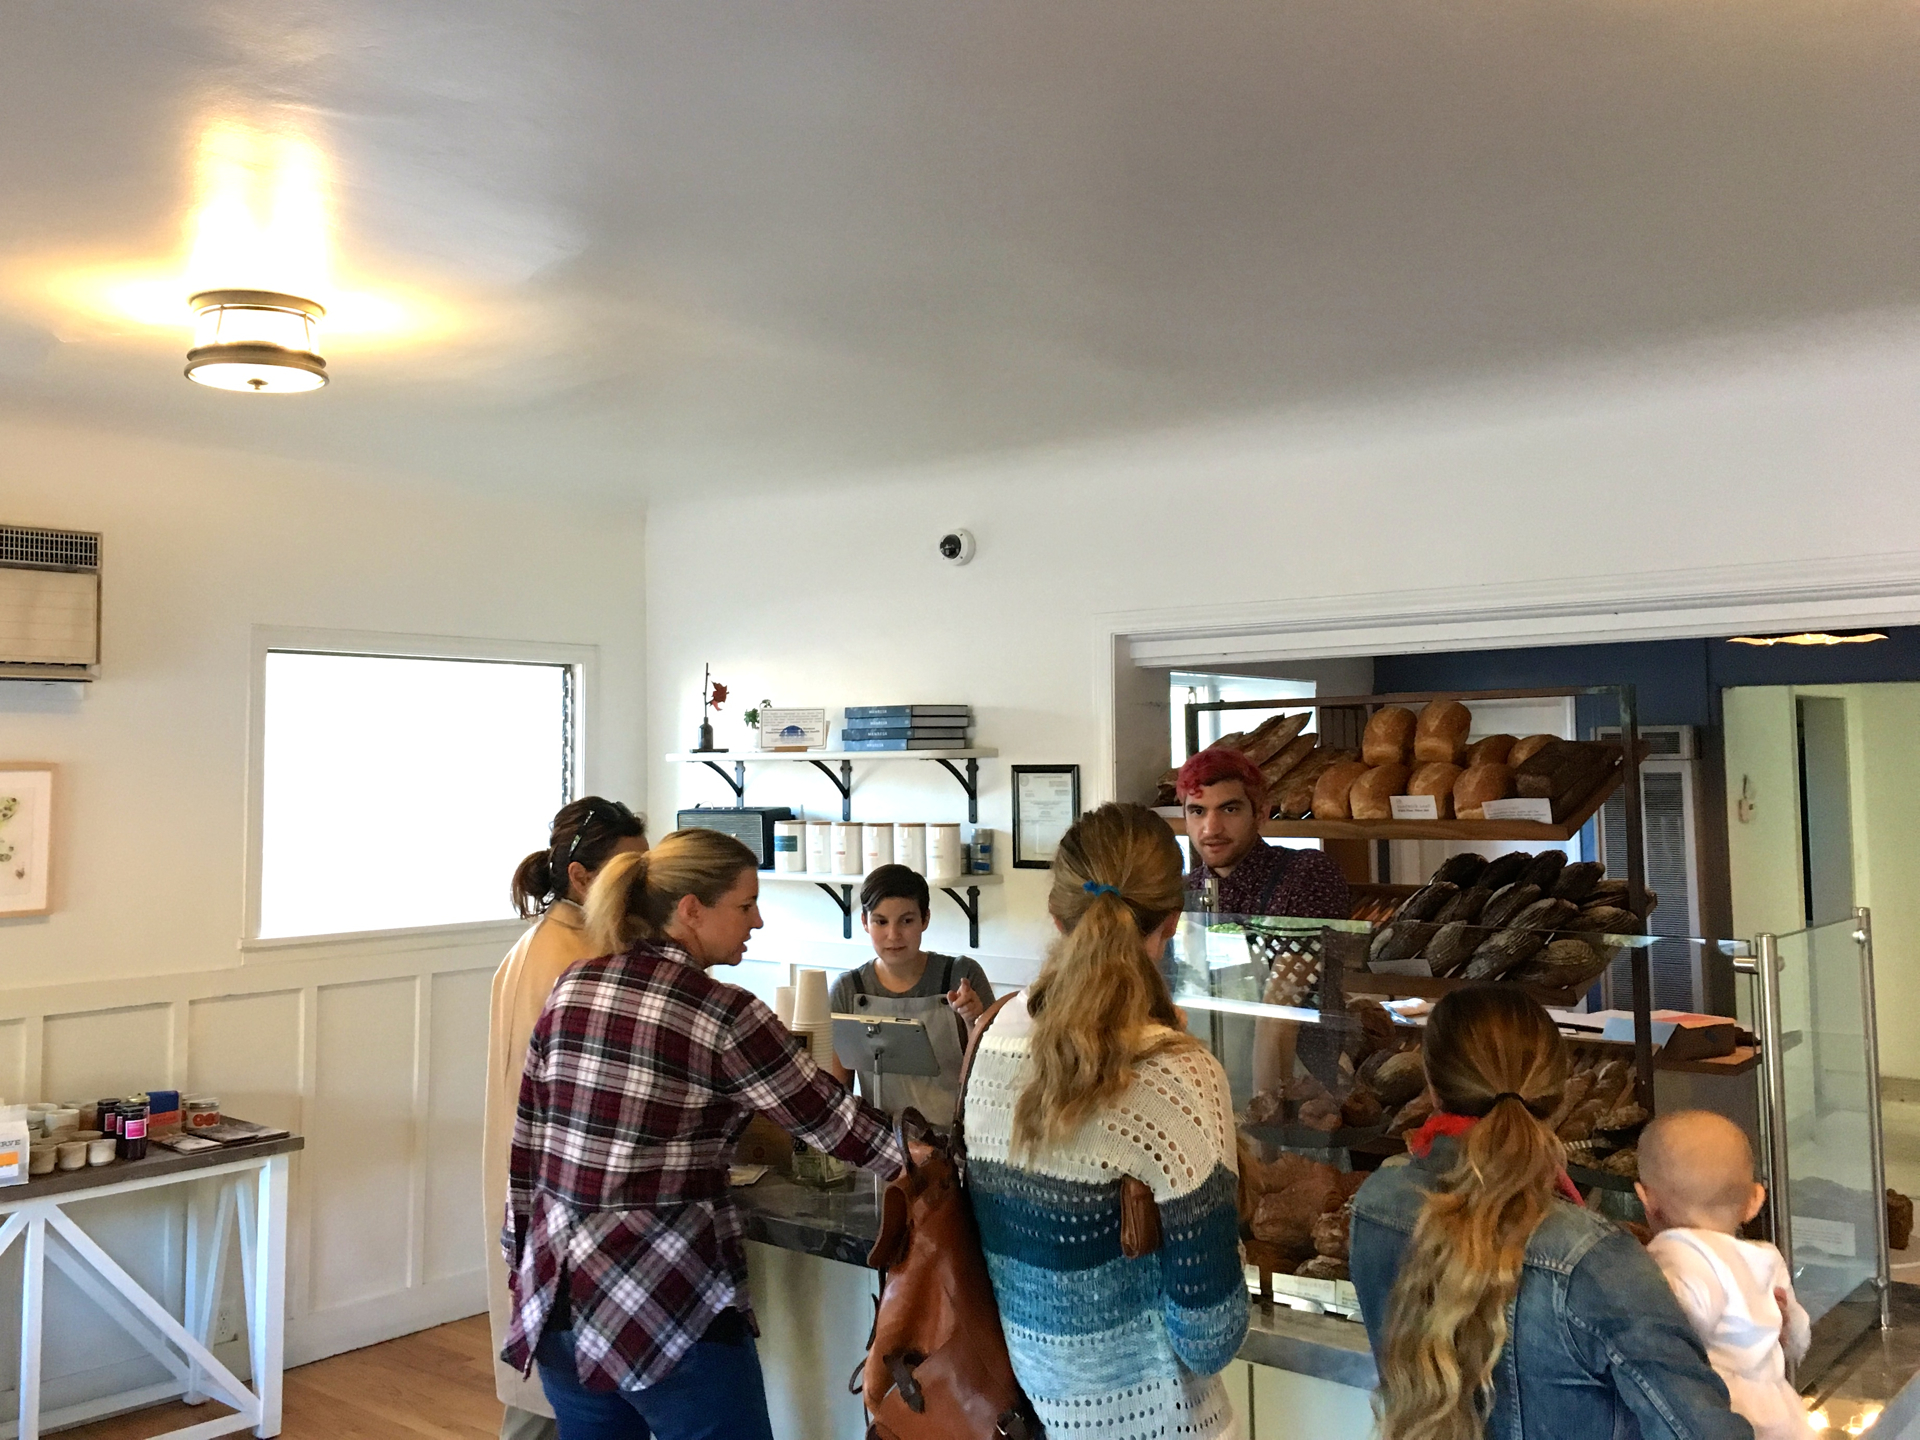 Inside Manresa Bread in Los Gatos.